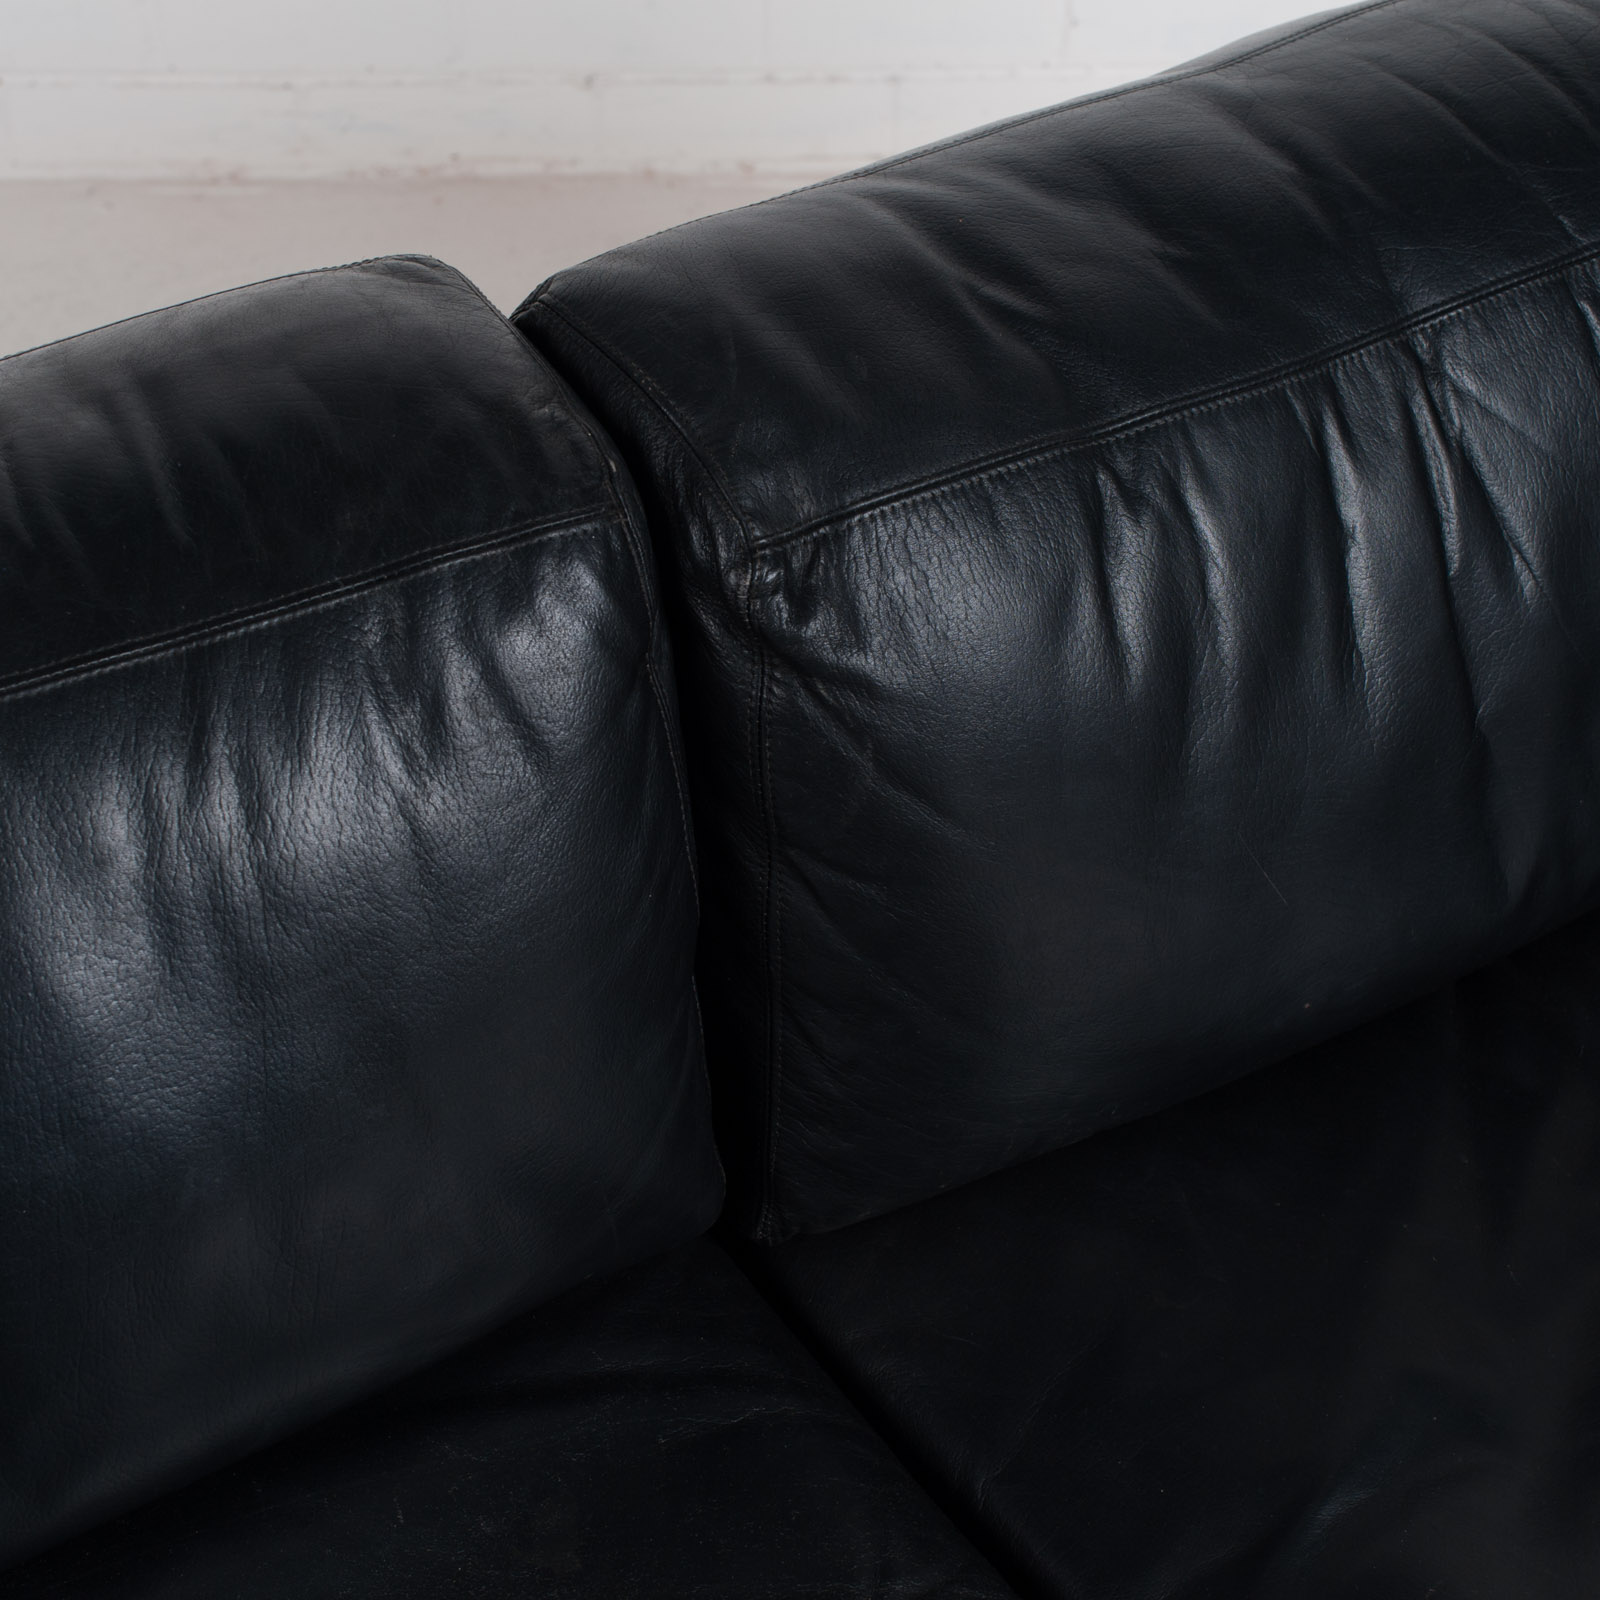 Ds 76 2 Seat Sofa By De Sede In Black Leather 1970s Switzerland 06